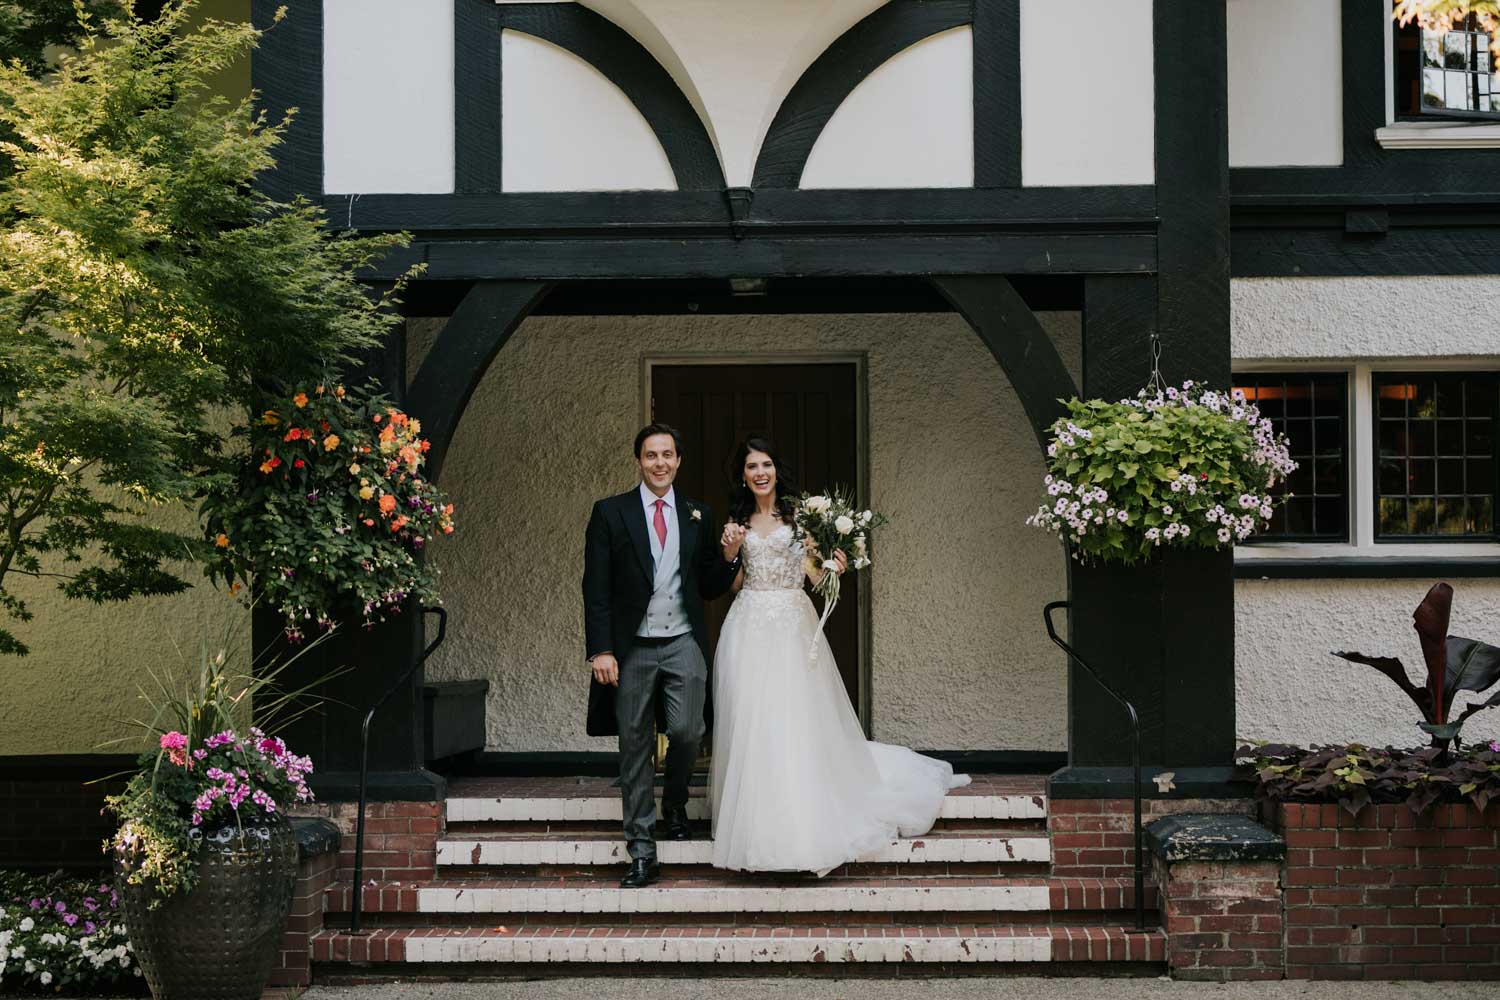 Happy bride and groom stand outside front entrance to gorgeous old heritage building and wedding venue in Vancouver, Brock House Restaurant